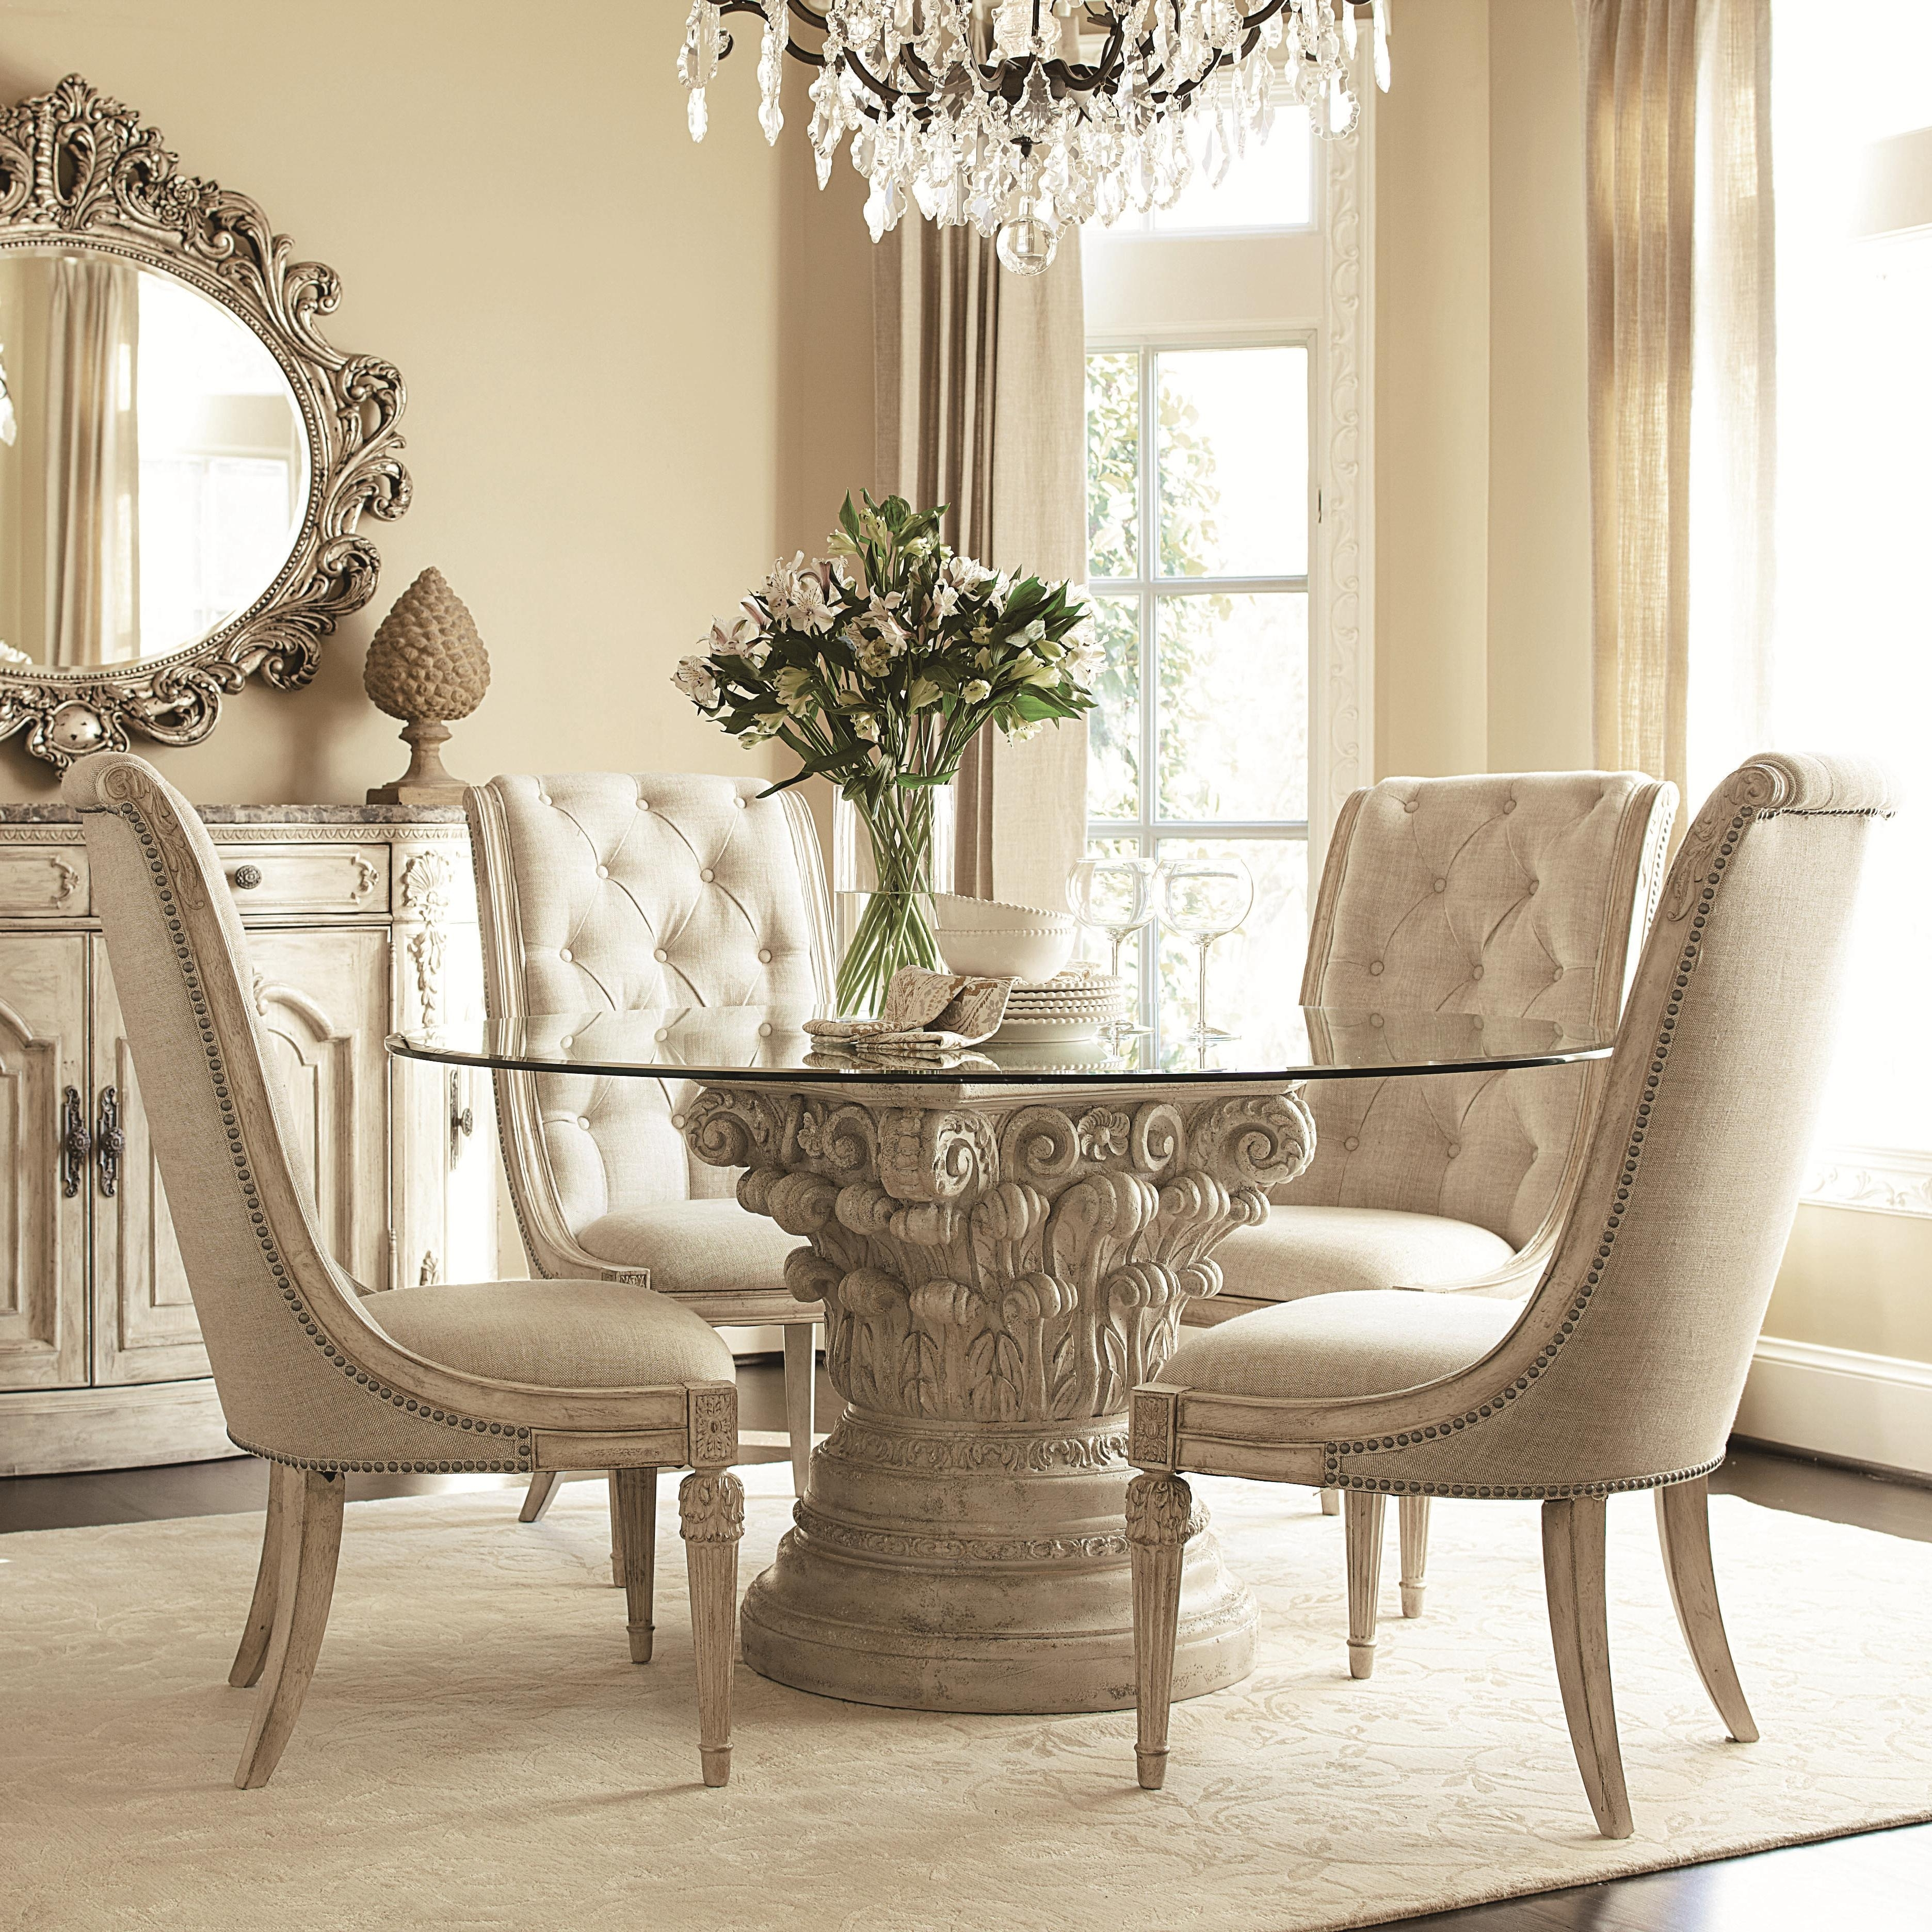 American Drew Jessica Mcclintock Home – The Boutique Collection 5 Within Most Recent Caira Black 7 Piece Dining Sets With Upholstered Side Chairs (Image 3 of 20)